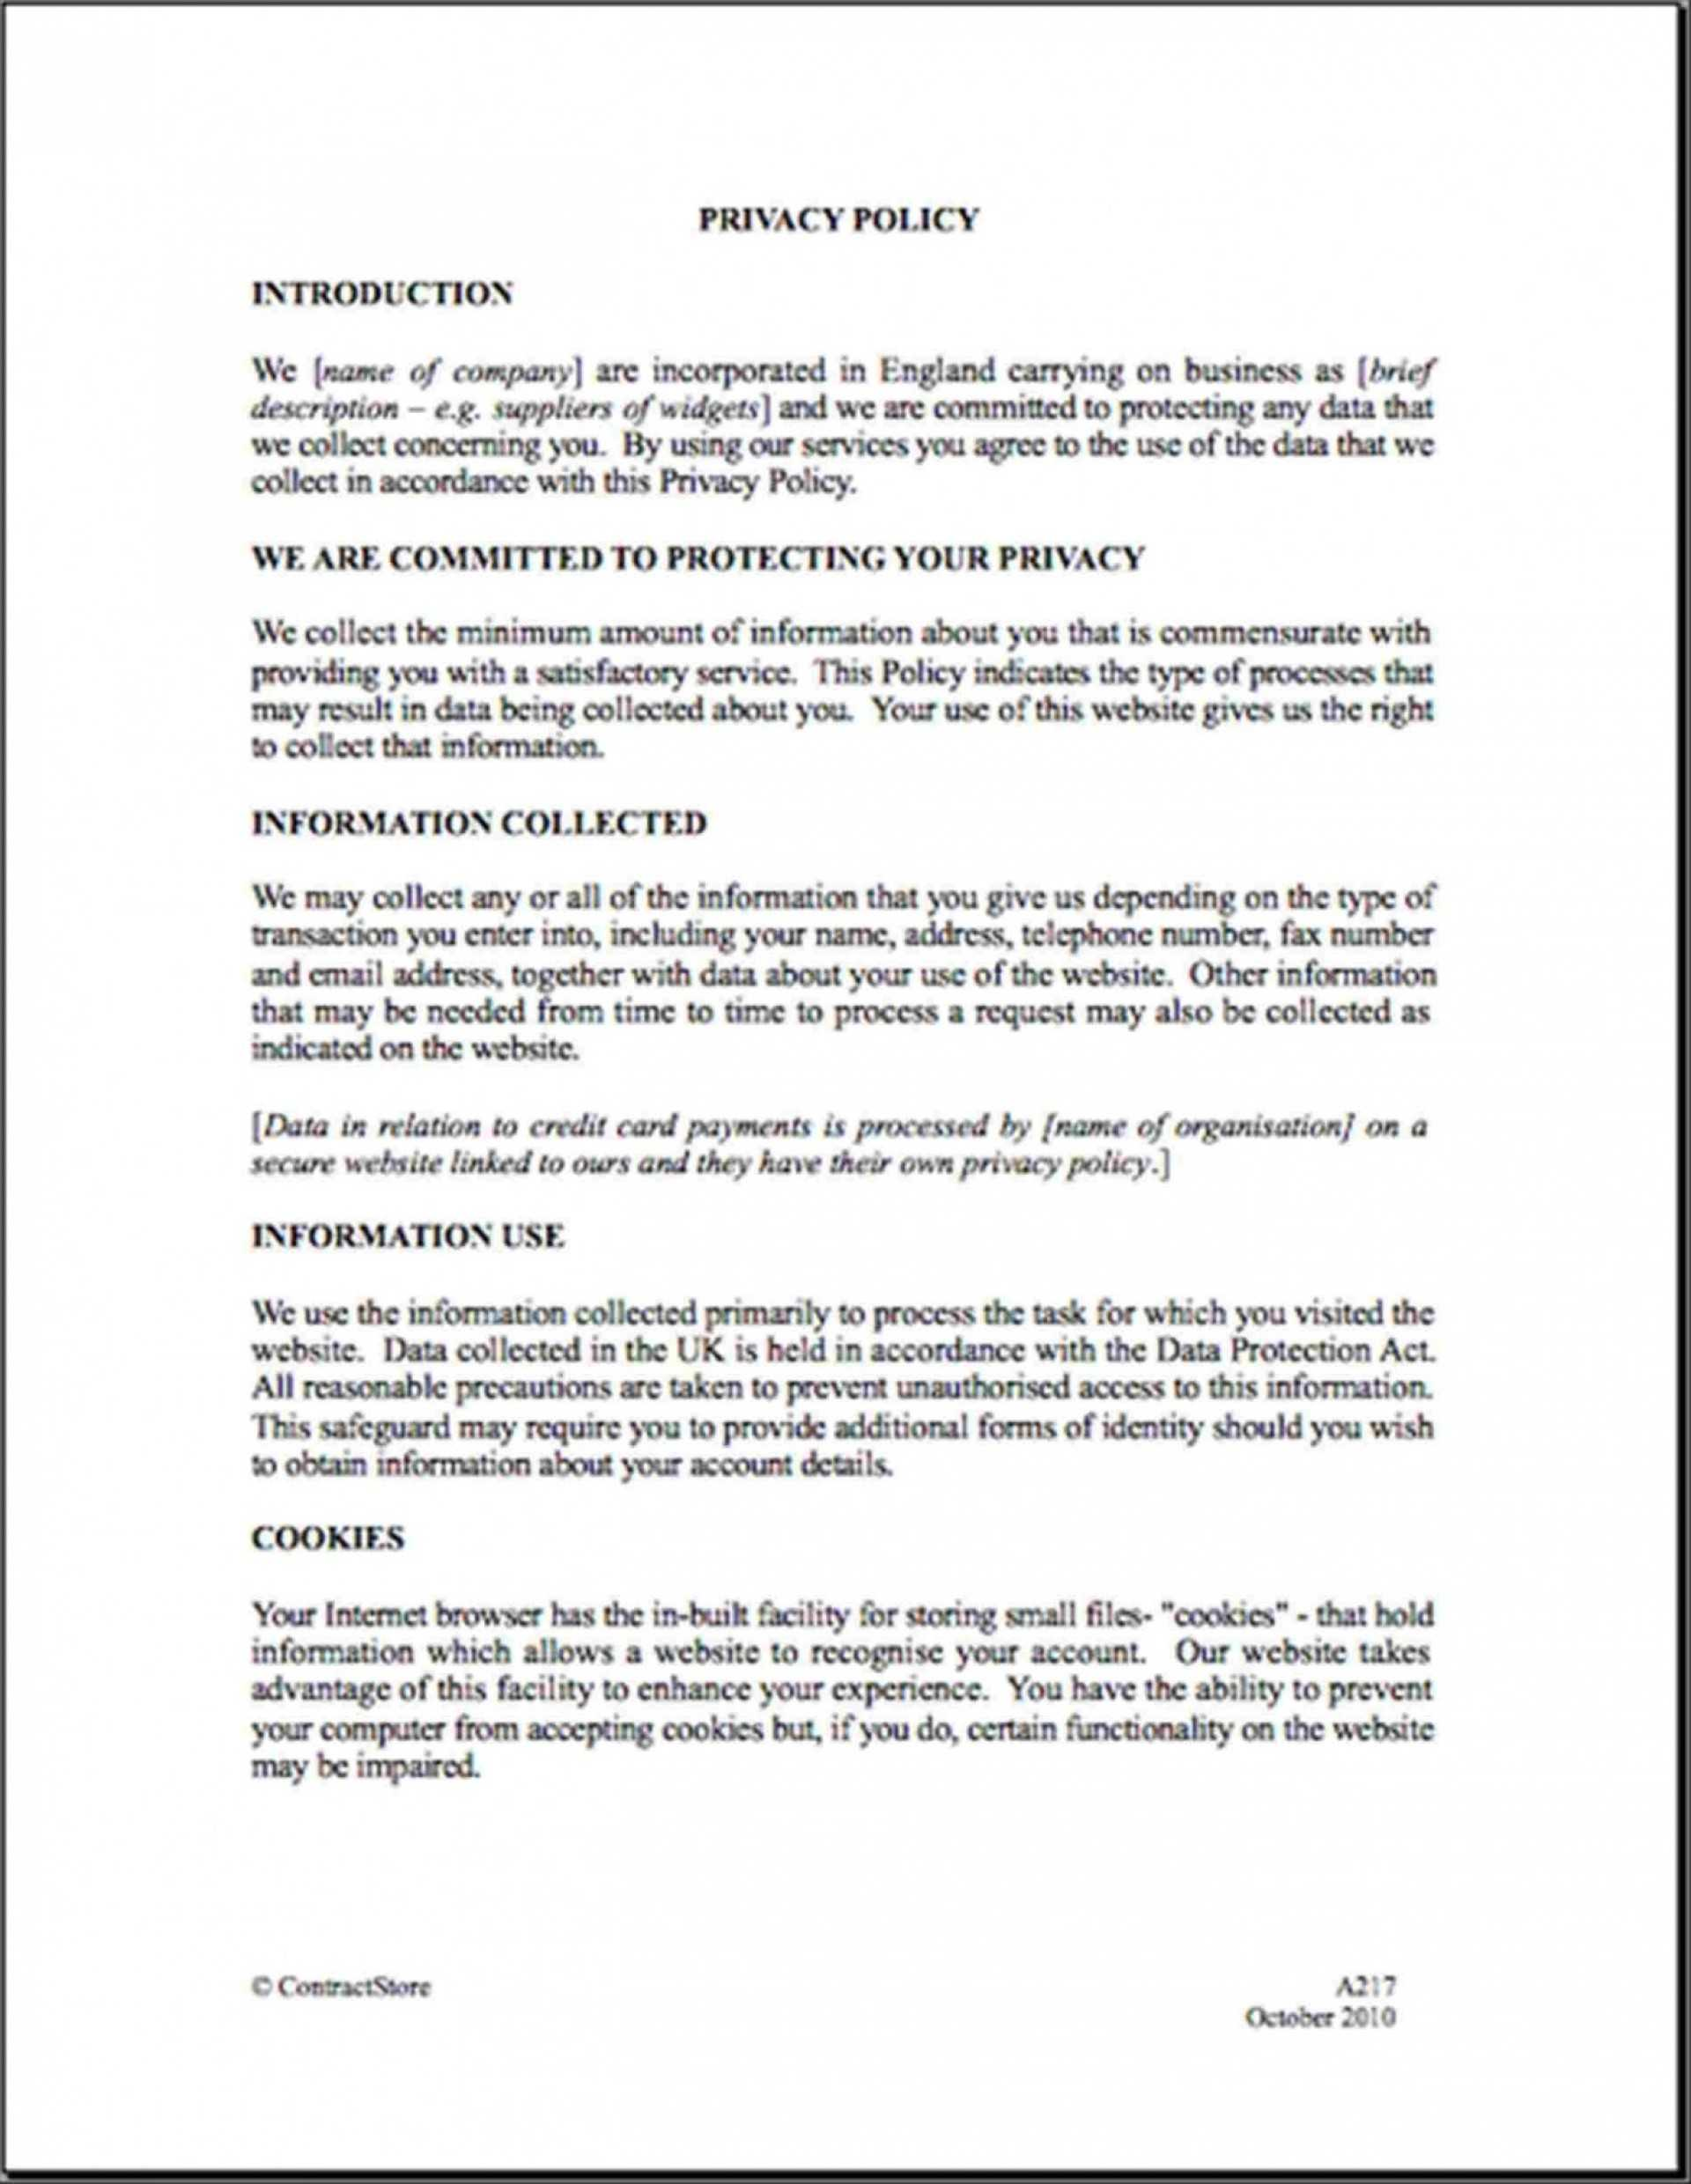 001 Company Privacy Policy Template Uk Ideas Intended For Credit Card Privacy Policy Template